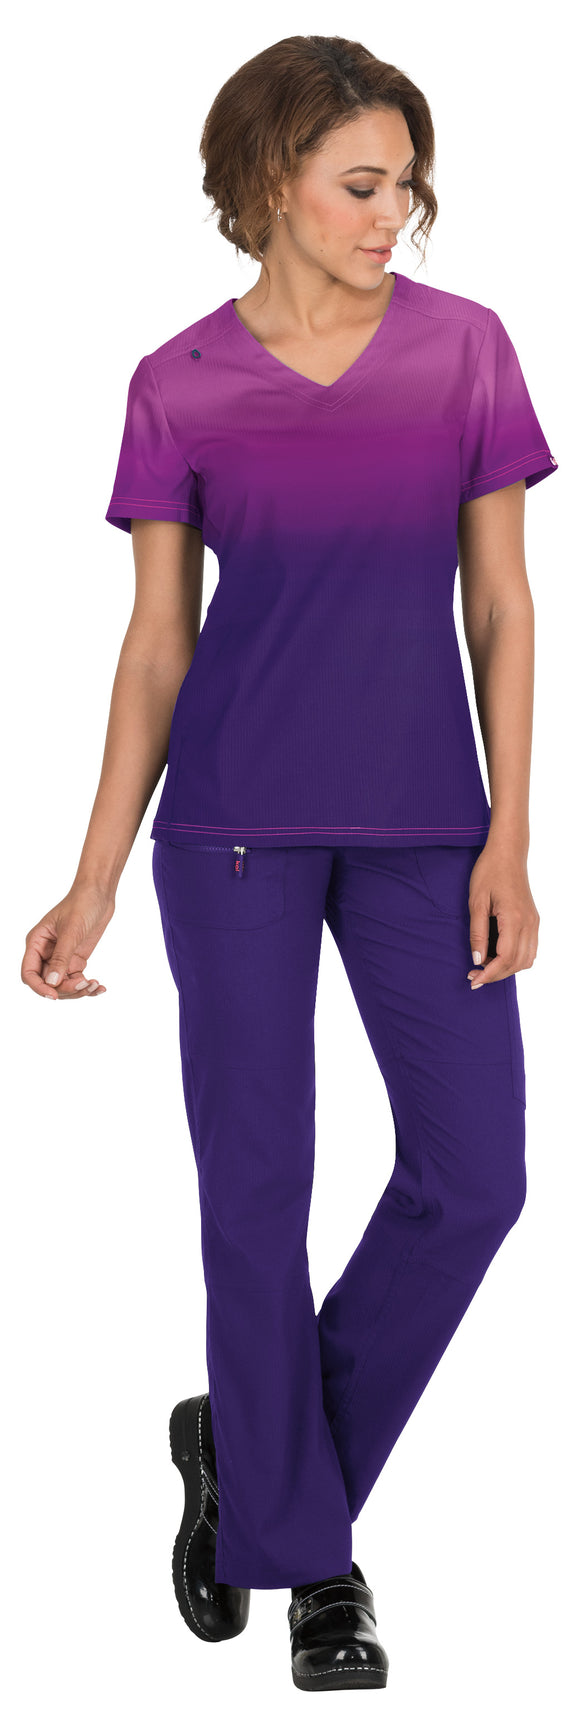 Koi Lite- Mulberry/Grape Reform Top